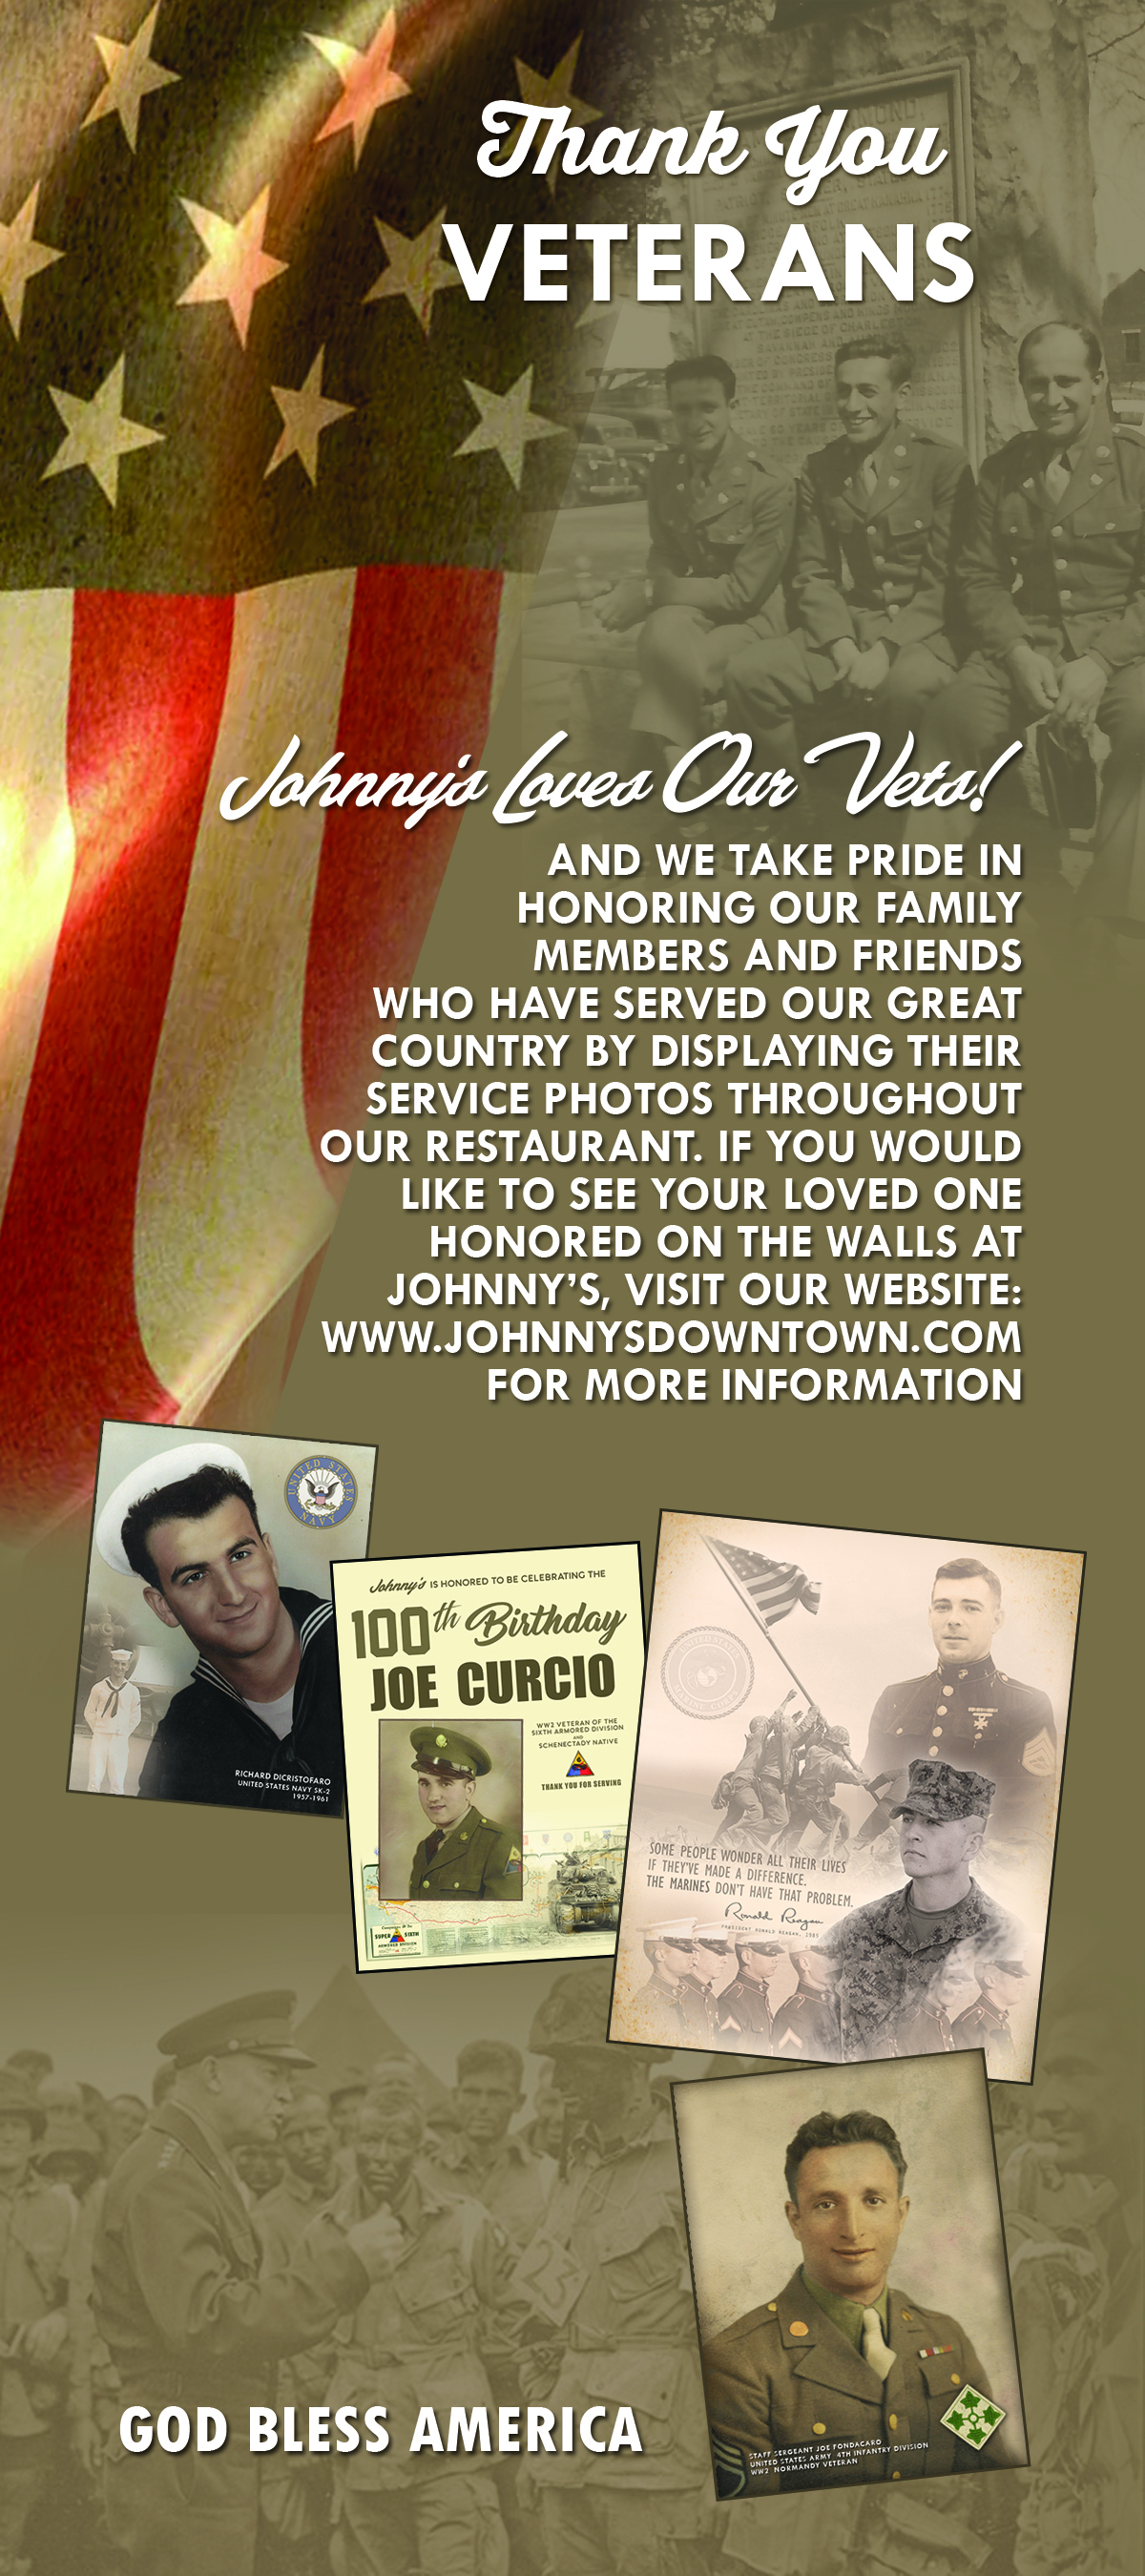 thank you veterans. johnny's loves our vets! and we take pride in honoring our family members and friends who have served our great country by displaying their service photos throughout our restaurant. if you would like to see your loved one honored on the walls at johnnys, visit our website, www.johnnysdowntown.com for more information. god bless america.